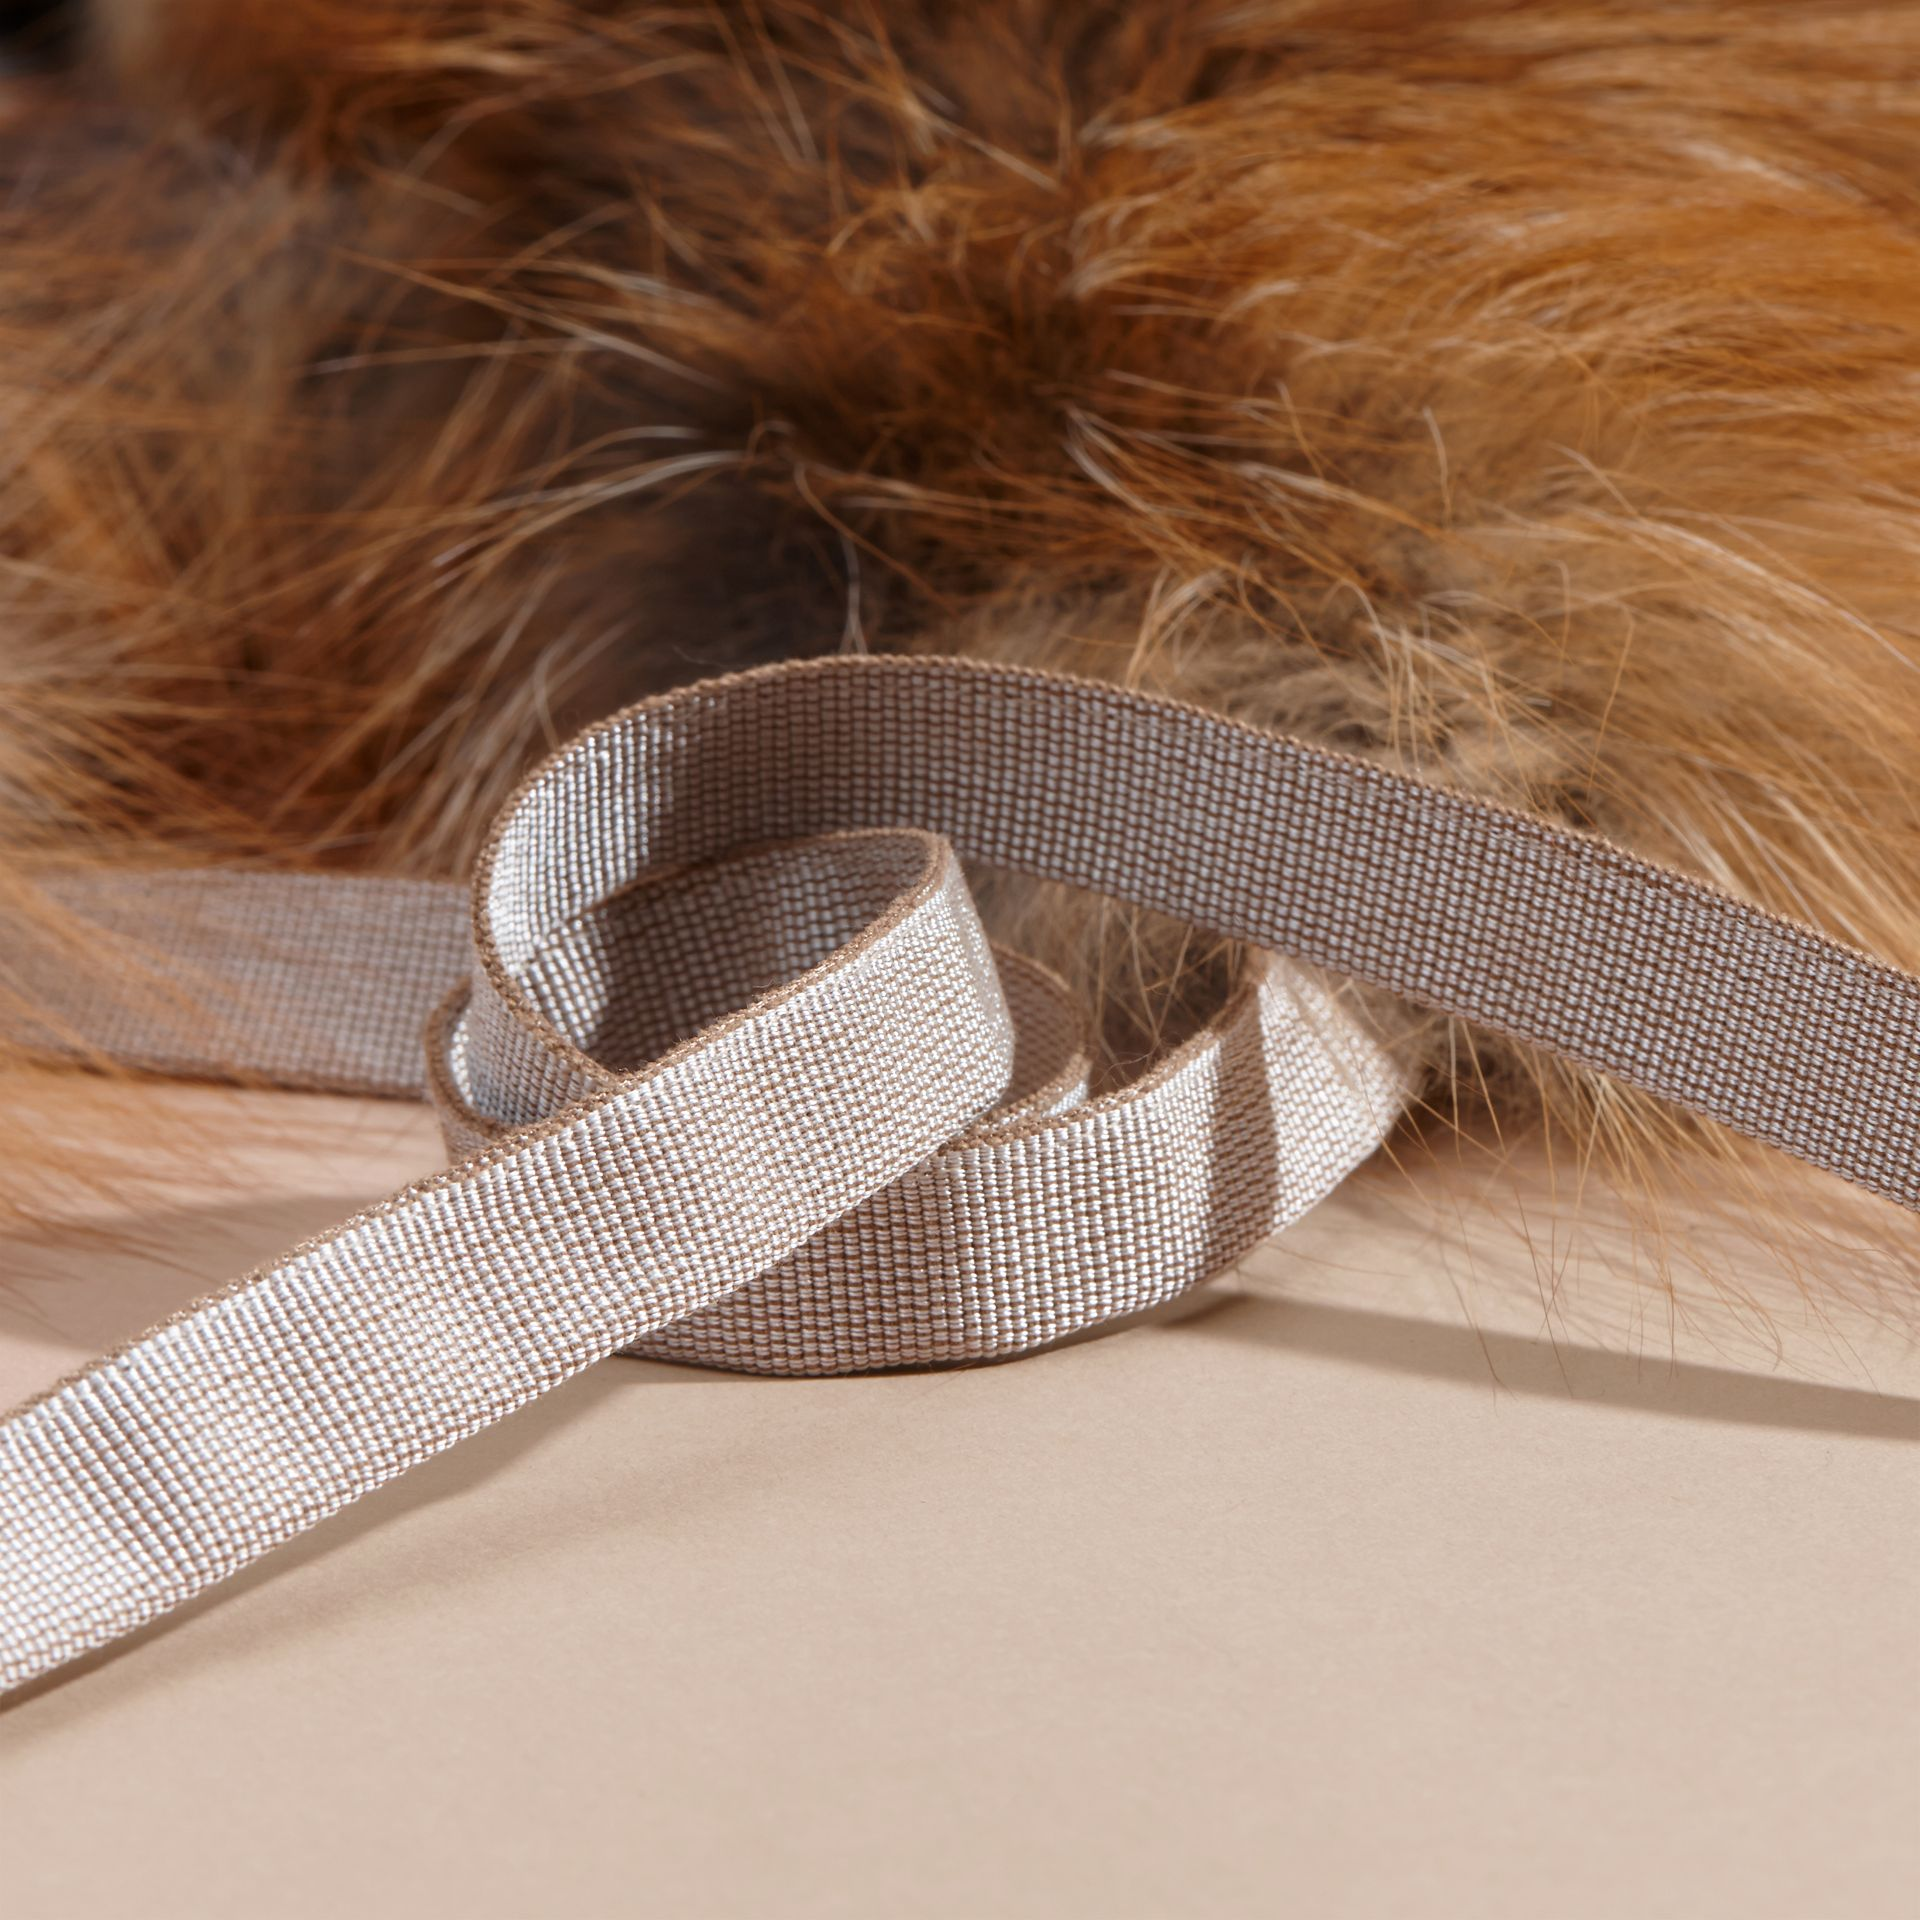 Fox Fur Collar with Check Cashmere Lining in Camel - Women | Burberry - gallery image 4